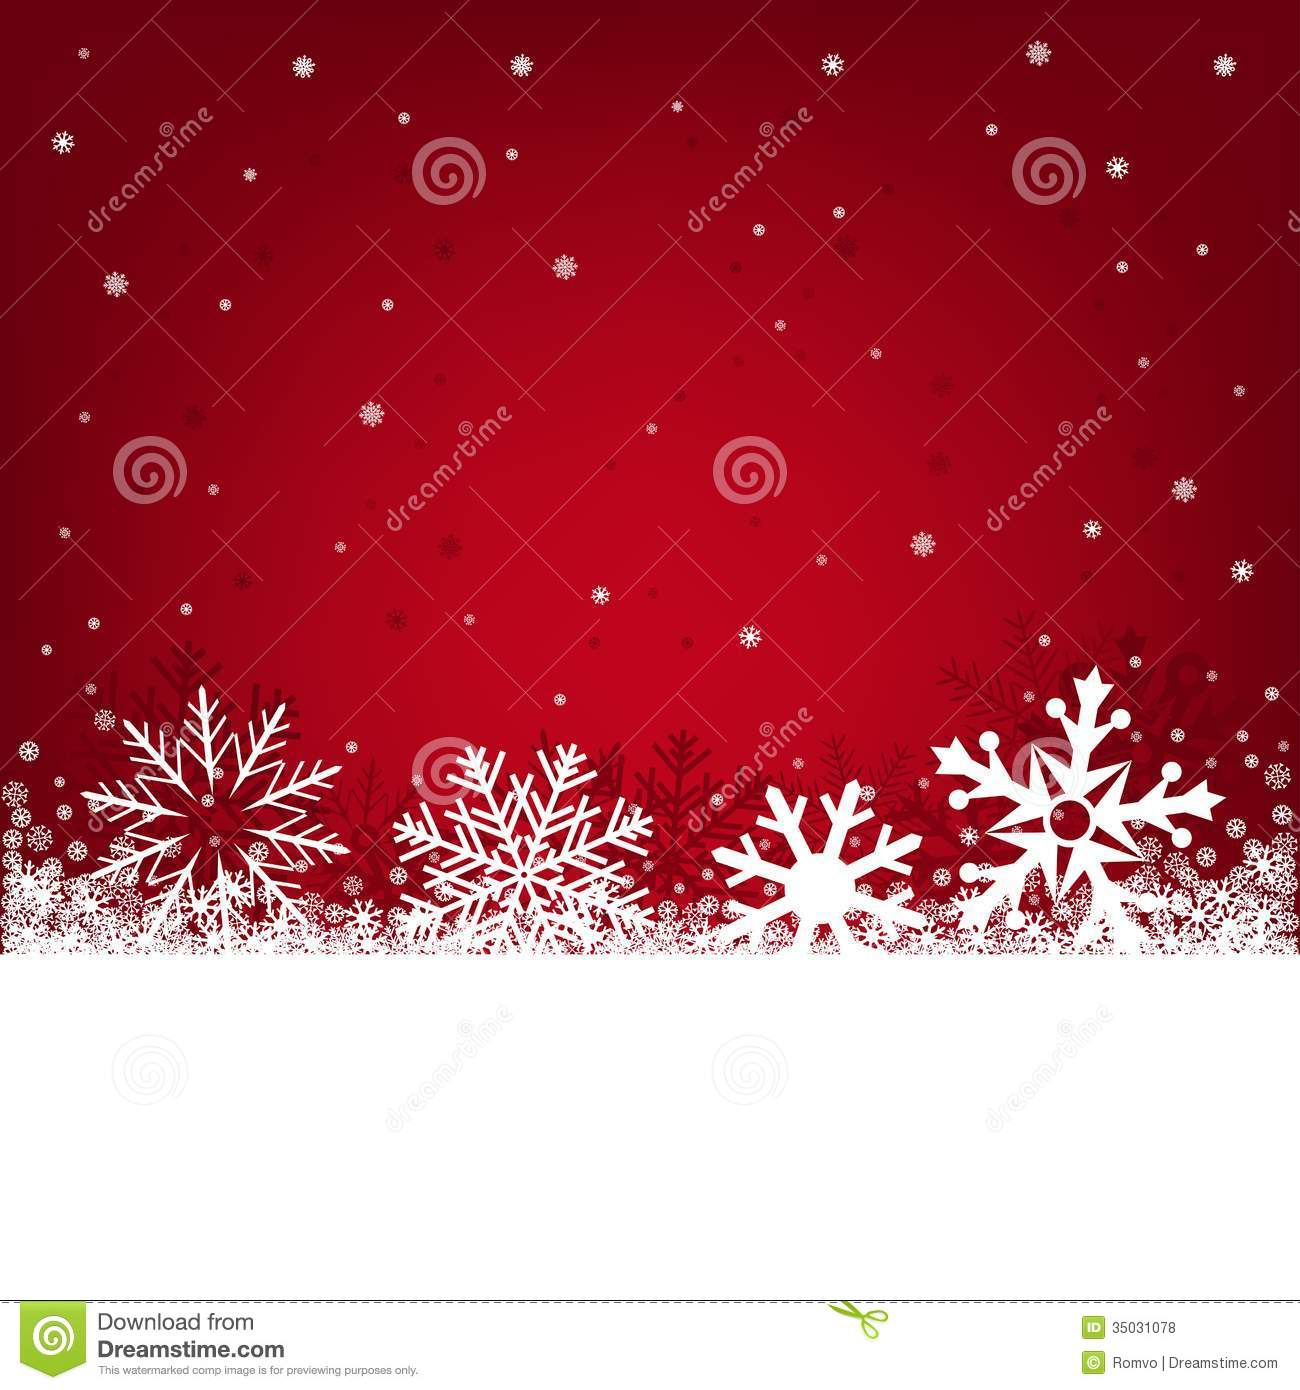 red snow christmas background - photo #21